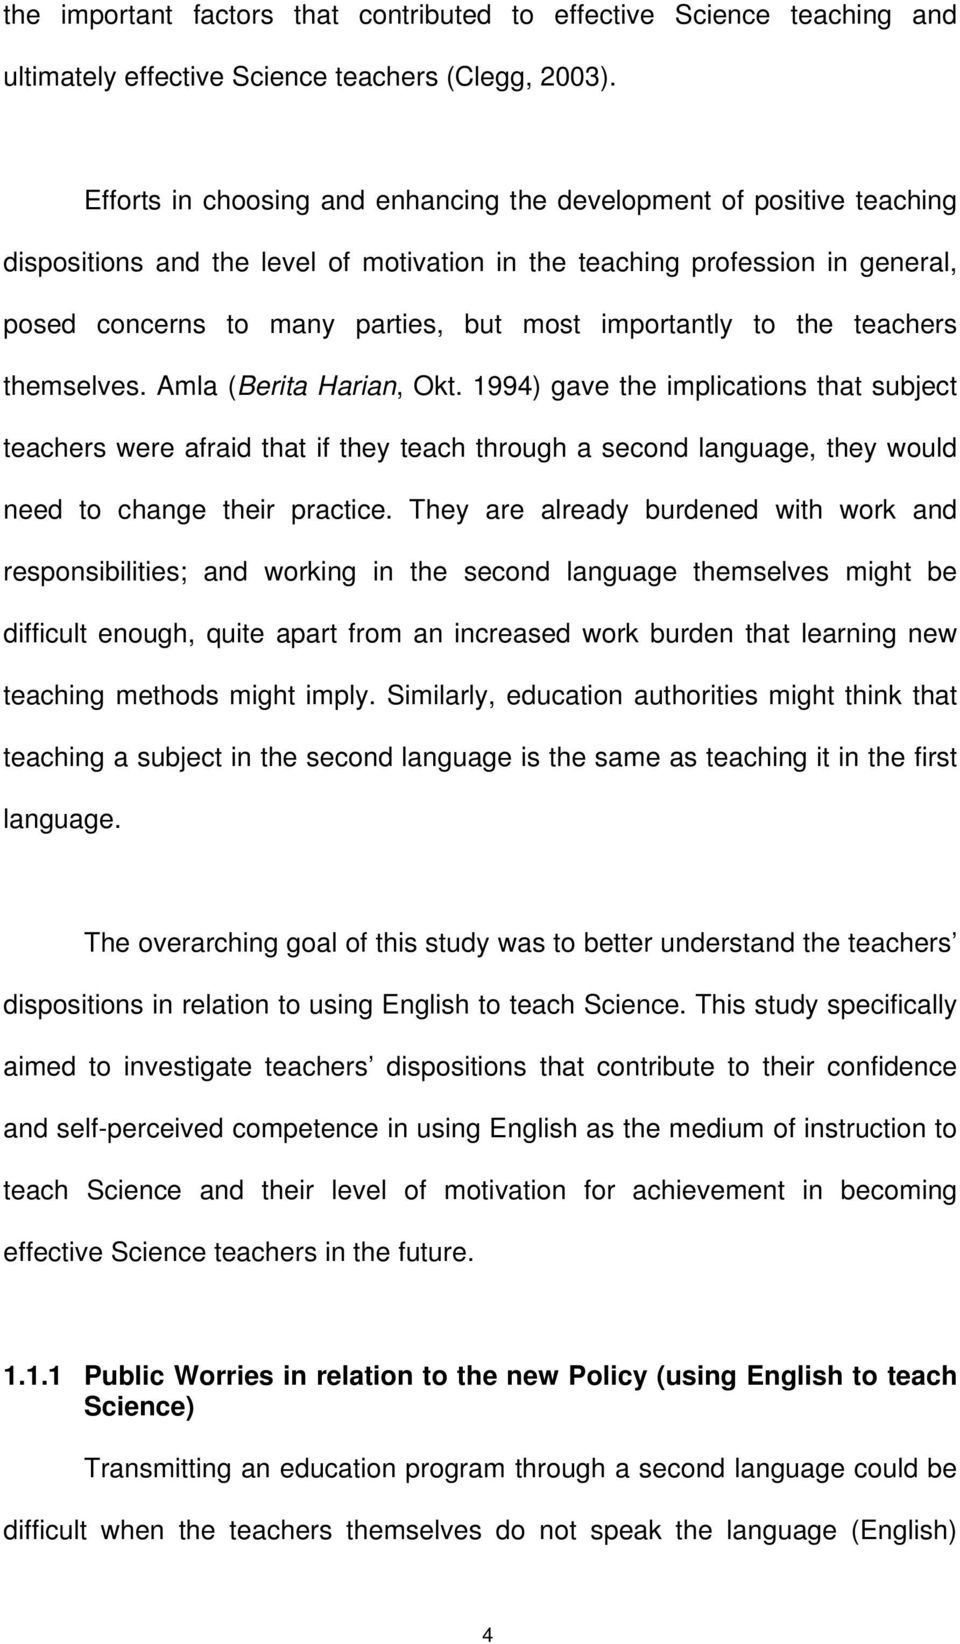 importantly to the teachers themselves. Amla (Berita Harian, Okt.